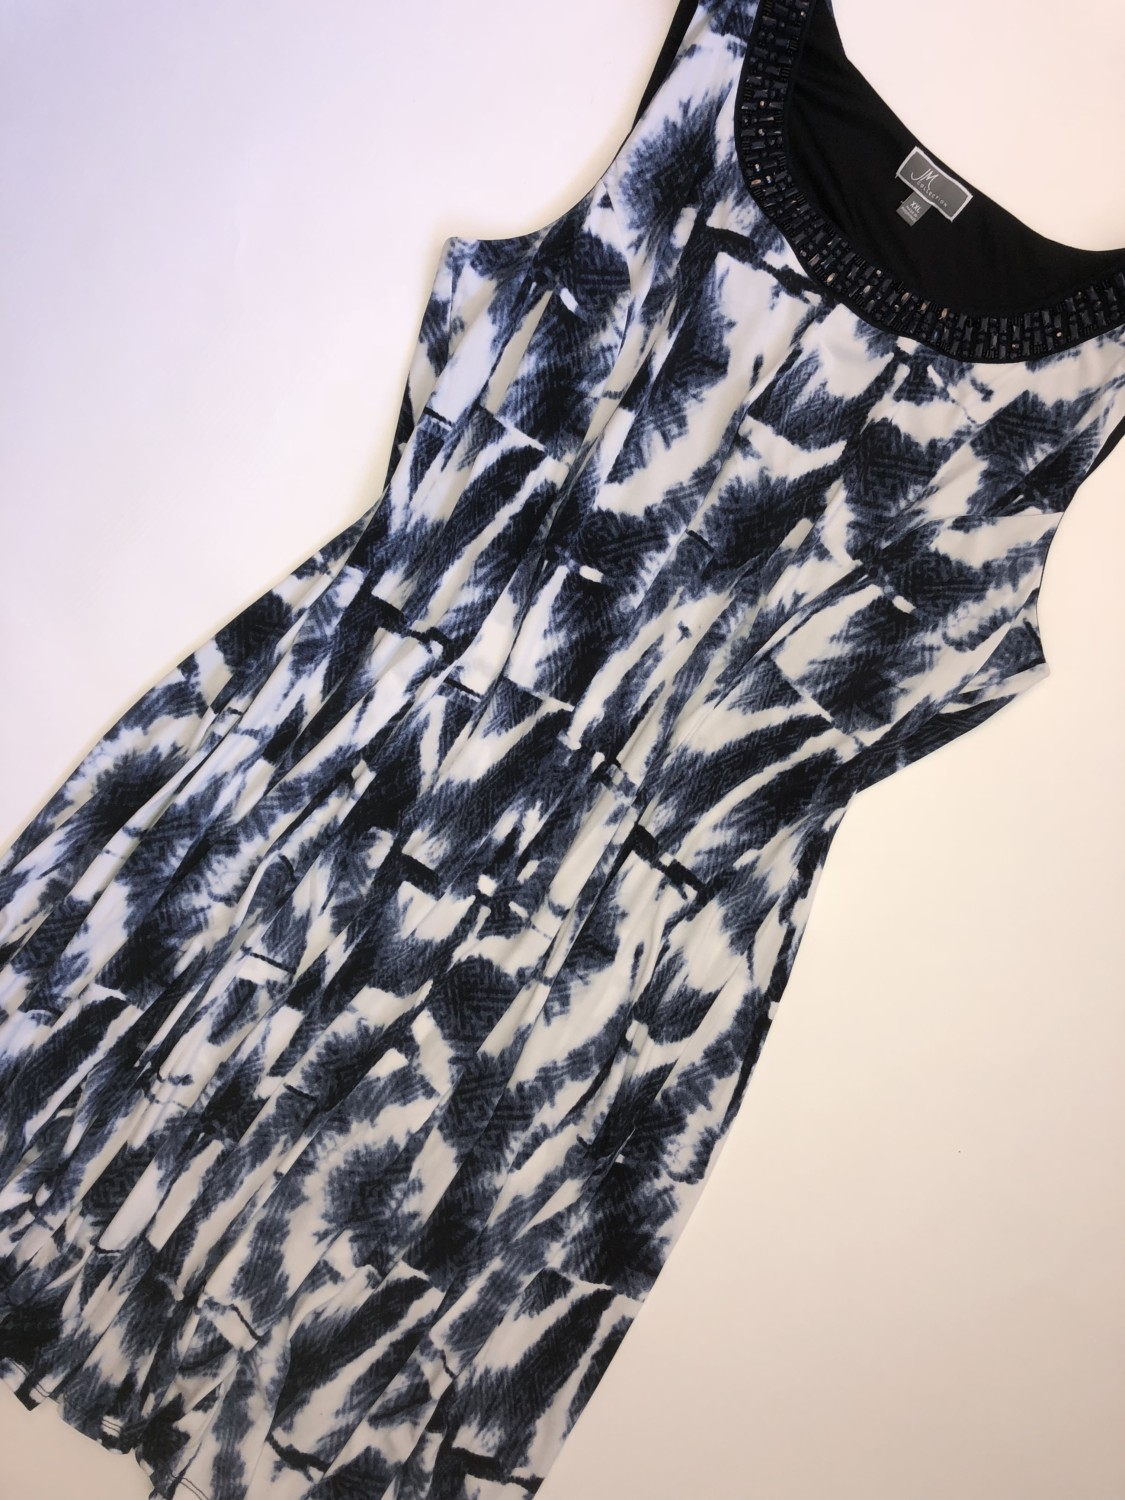 JM Collection Dress – Original Retail: $59.50, CWS: $20, Liquidation: $10